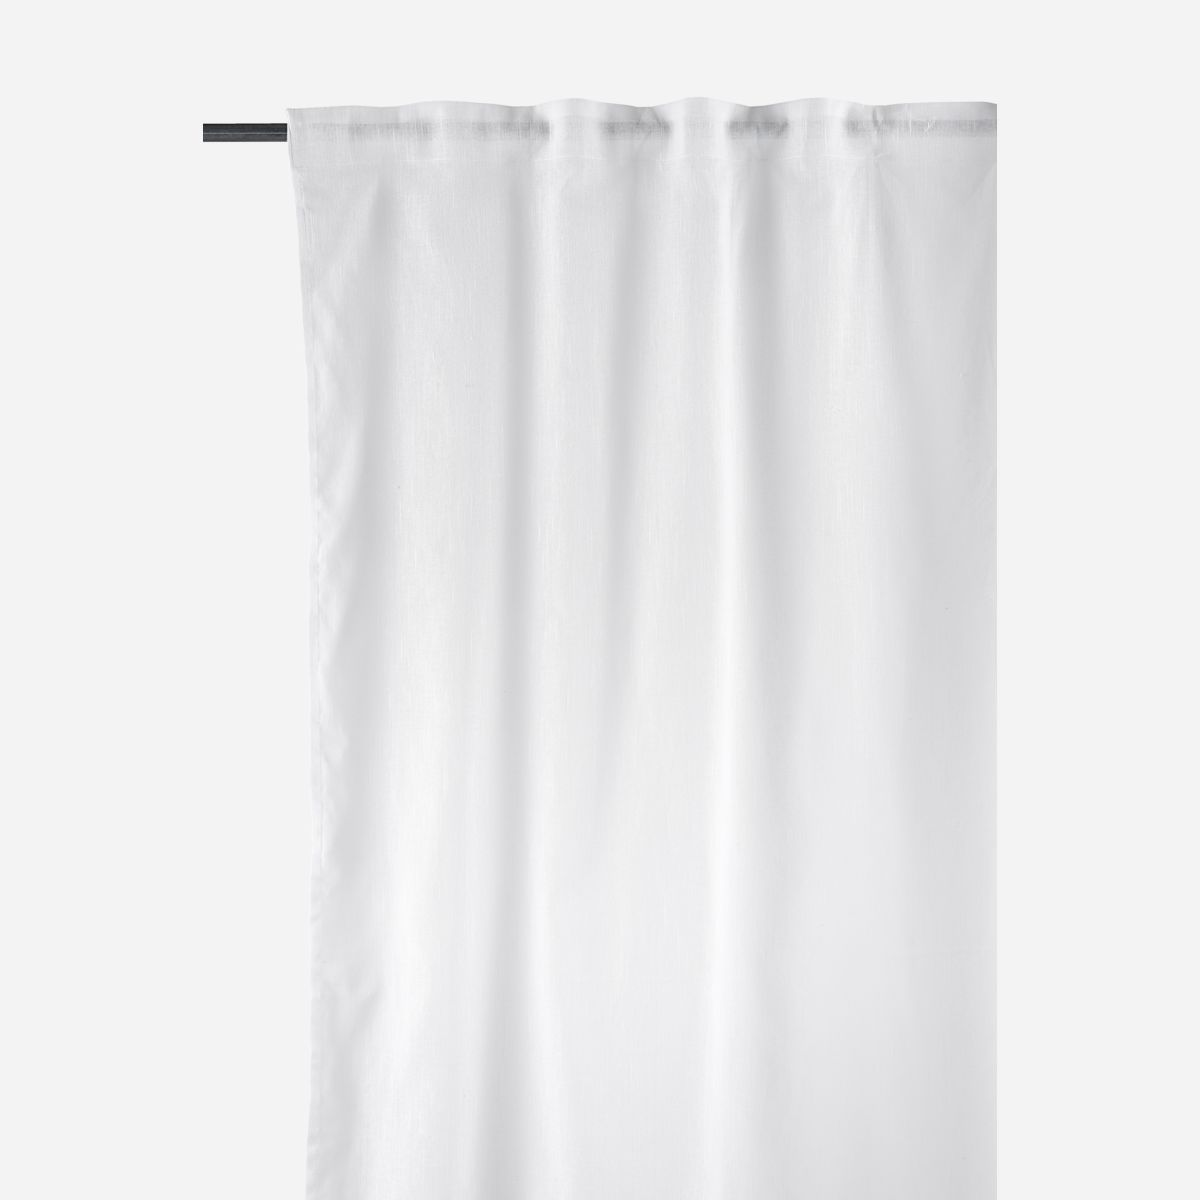 Image of   Curtains, Plain, White, Set of 2 pcs